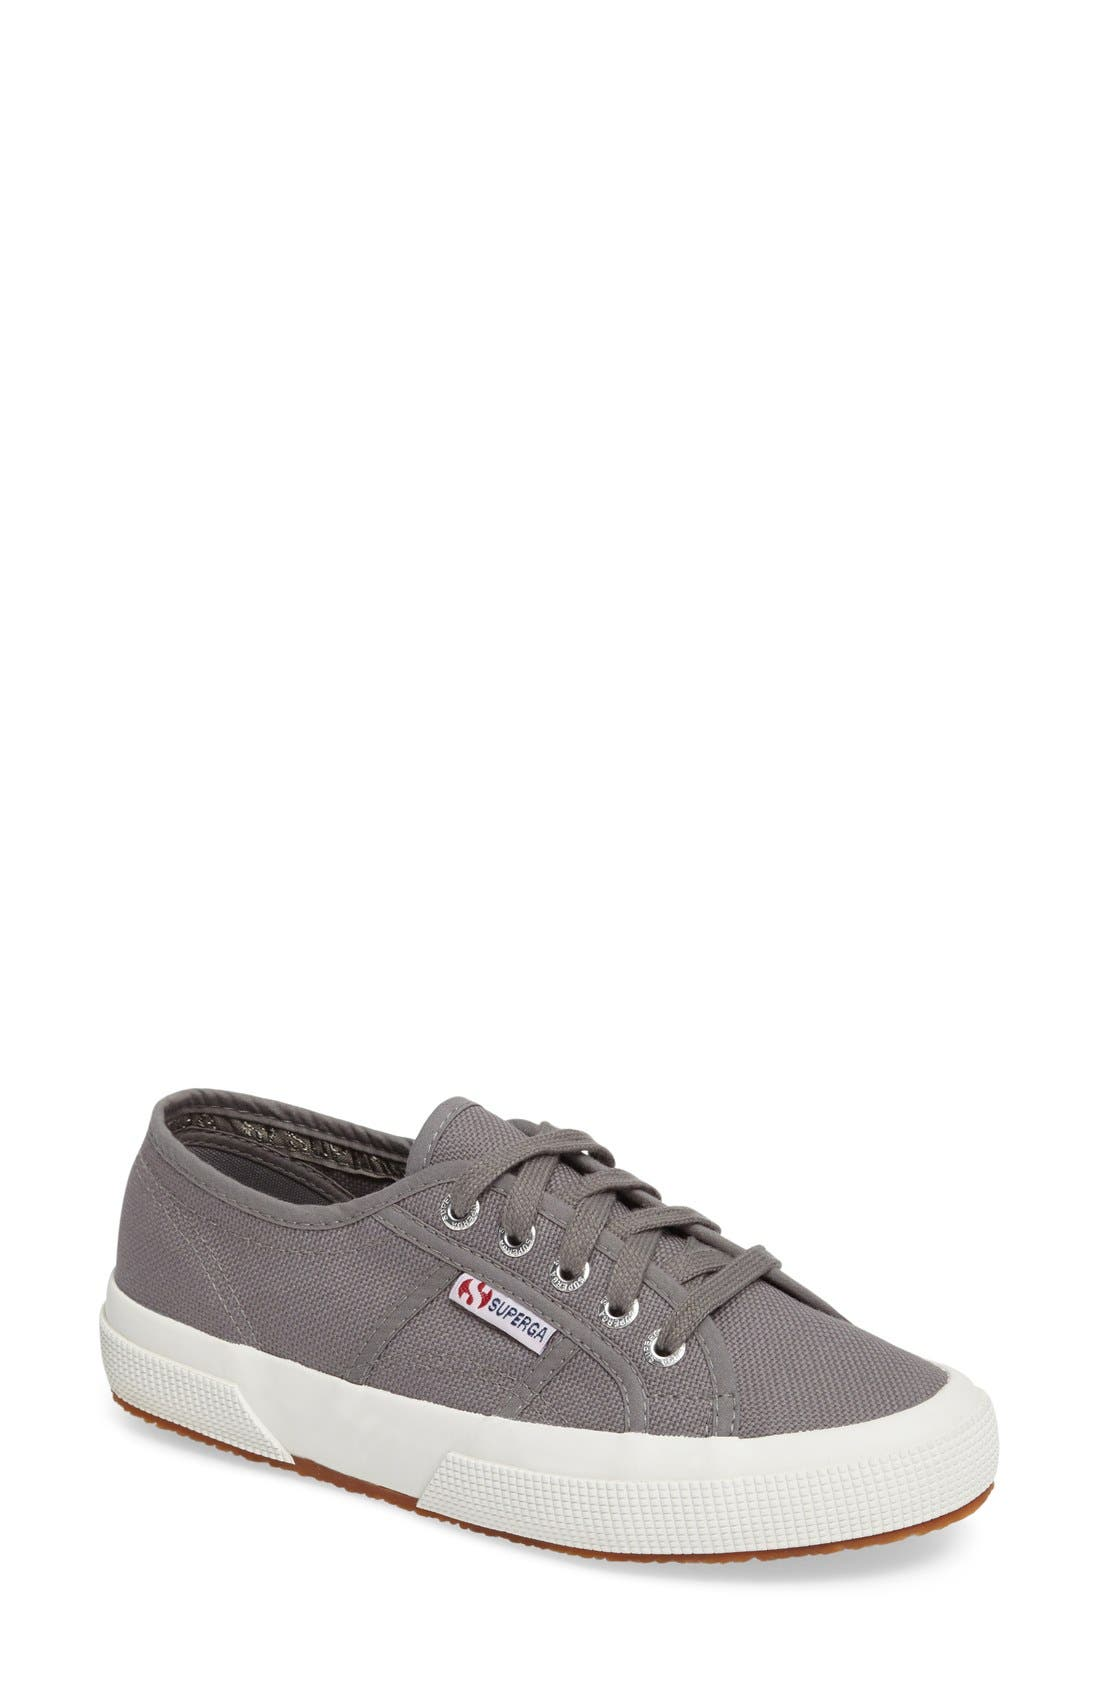 Main Image - Superga 'Cotu' Sneaker (Women)